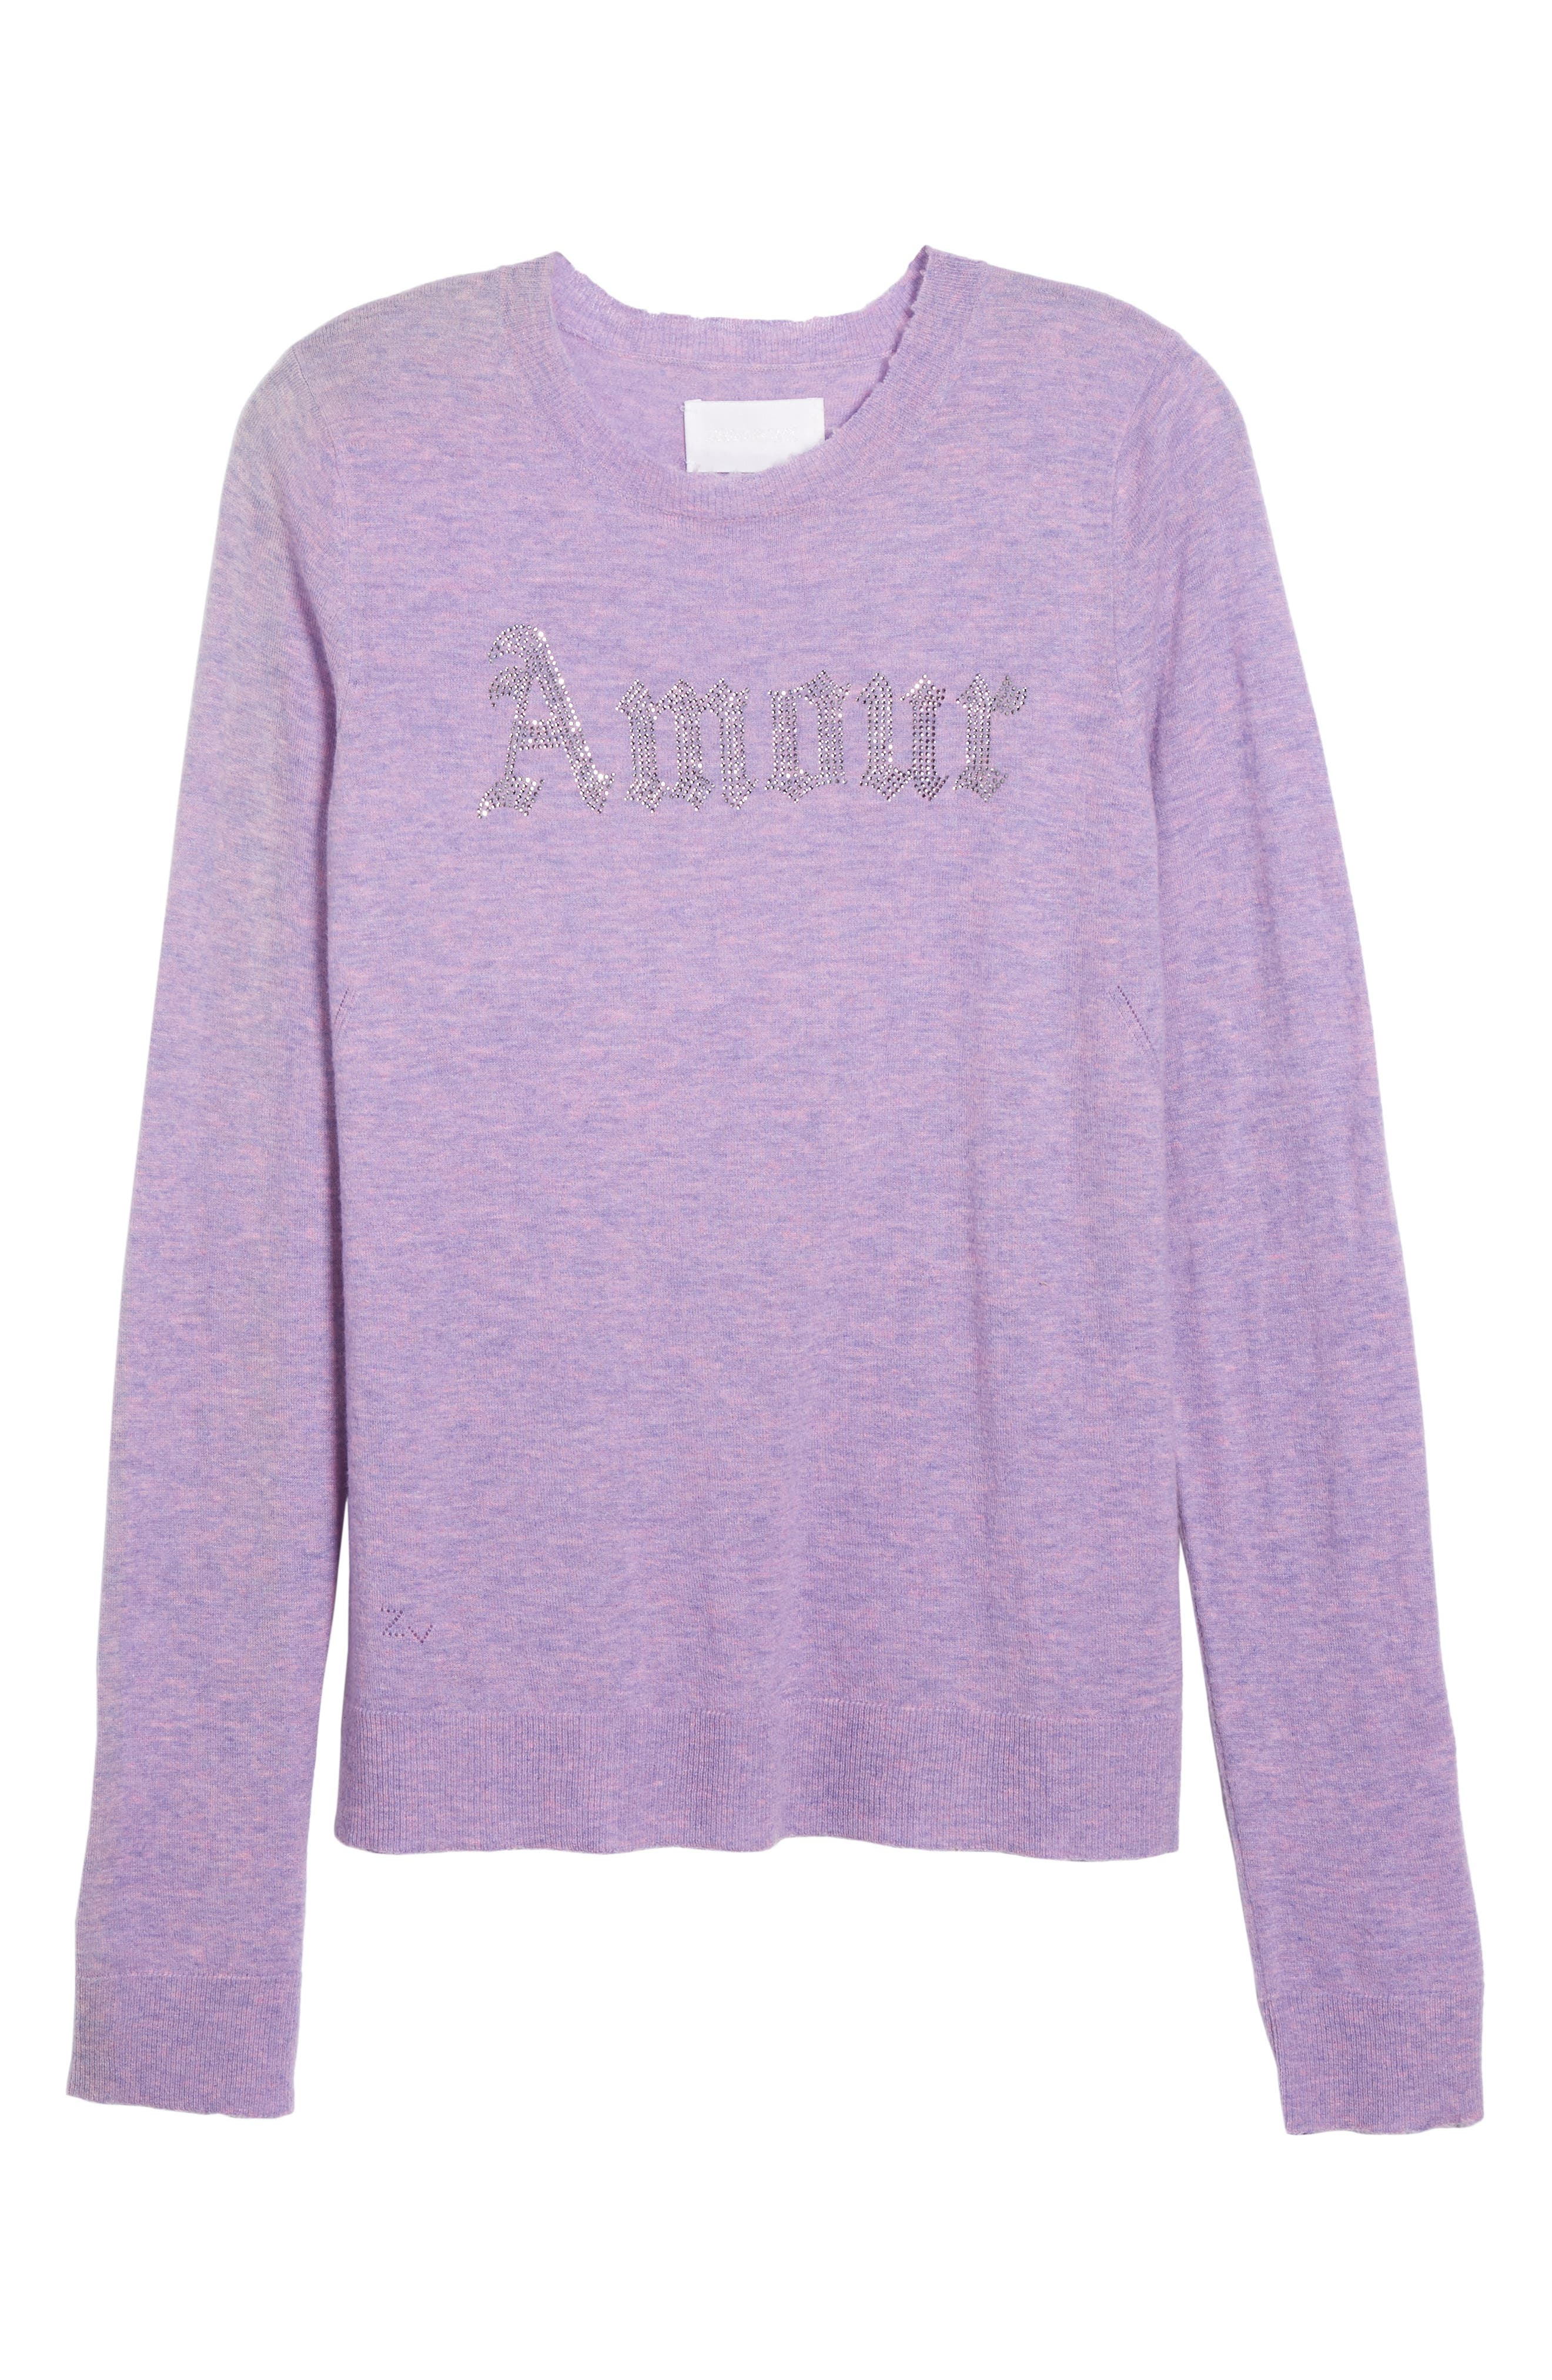 Miss Bis Cashmere Sweater,                             Alternate thumbnail 6, color,